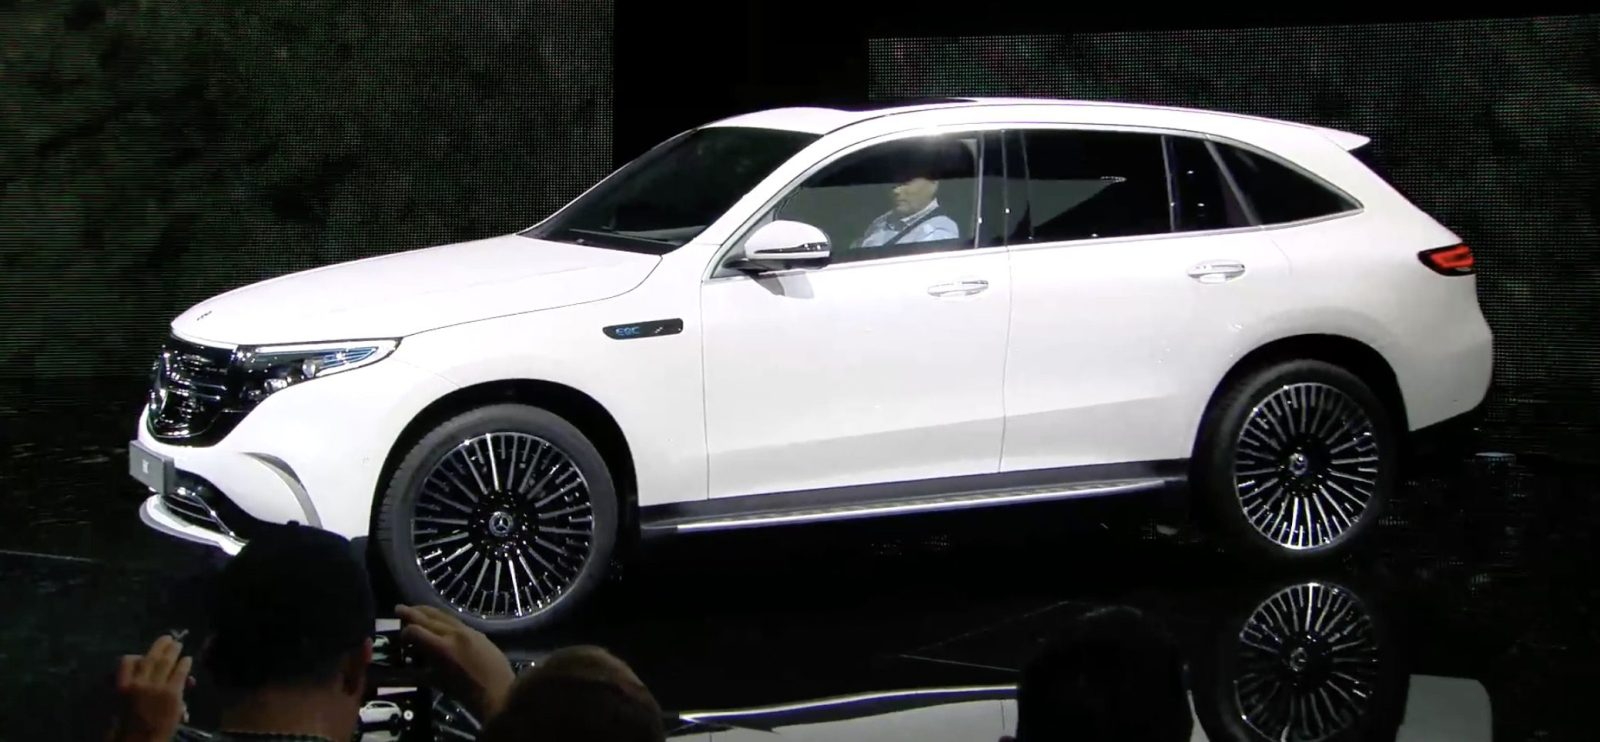 Mercedes Benz Says Its First Electric Eqc Suv Is Already